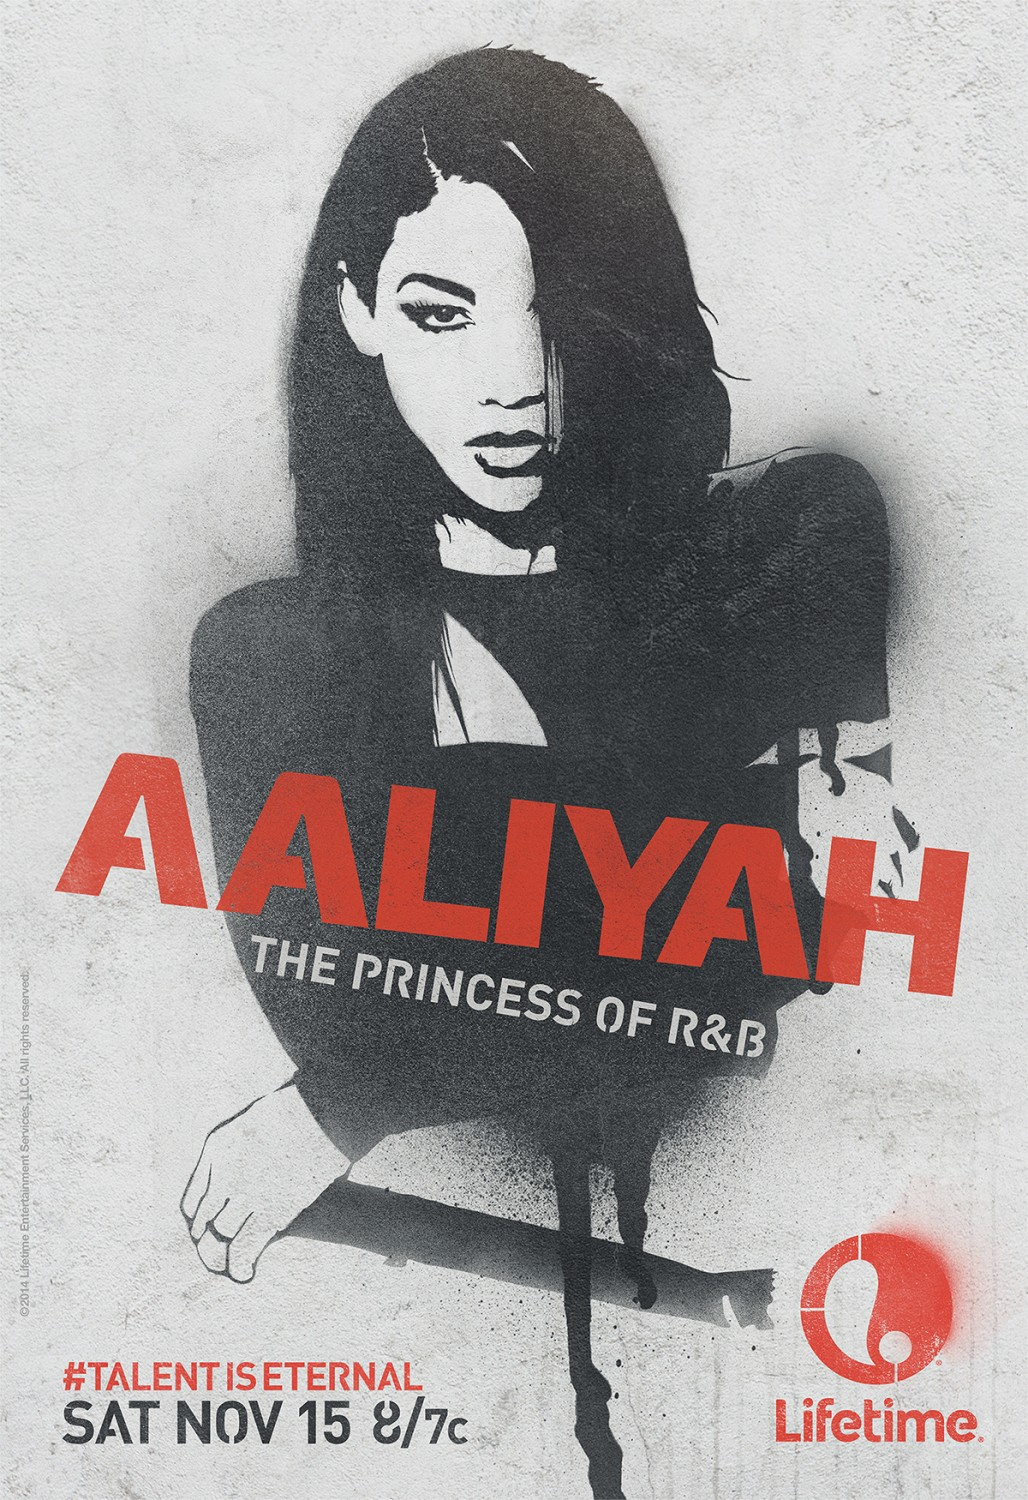 aaliyah_the_princess_of_randb_xlg